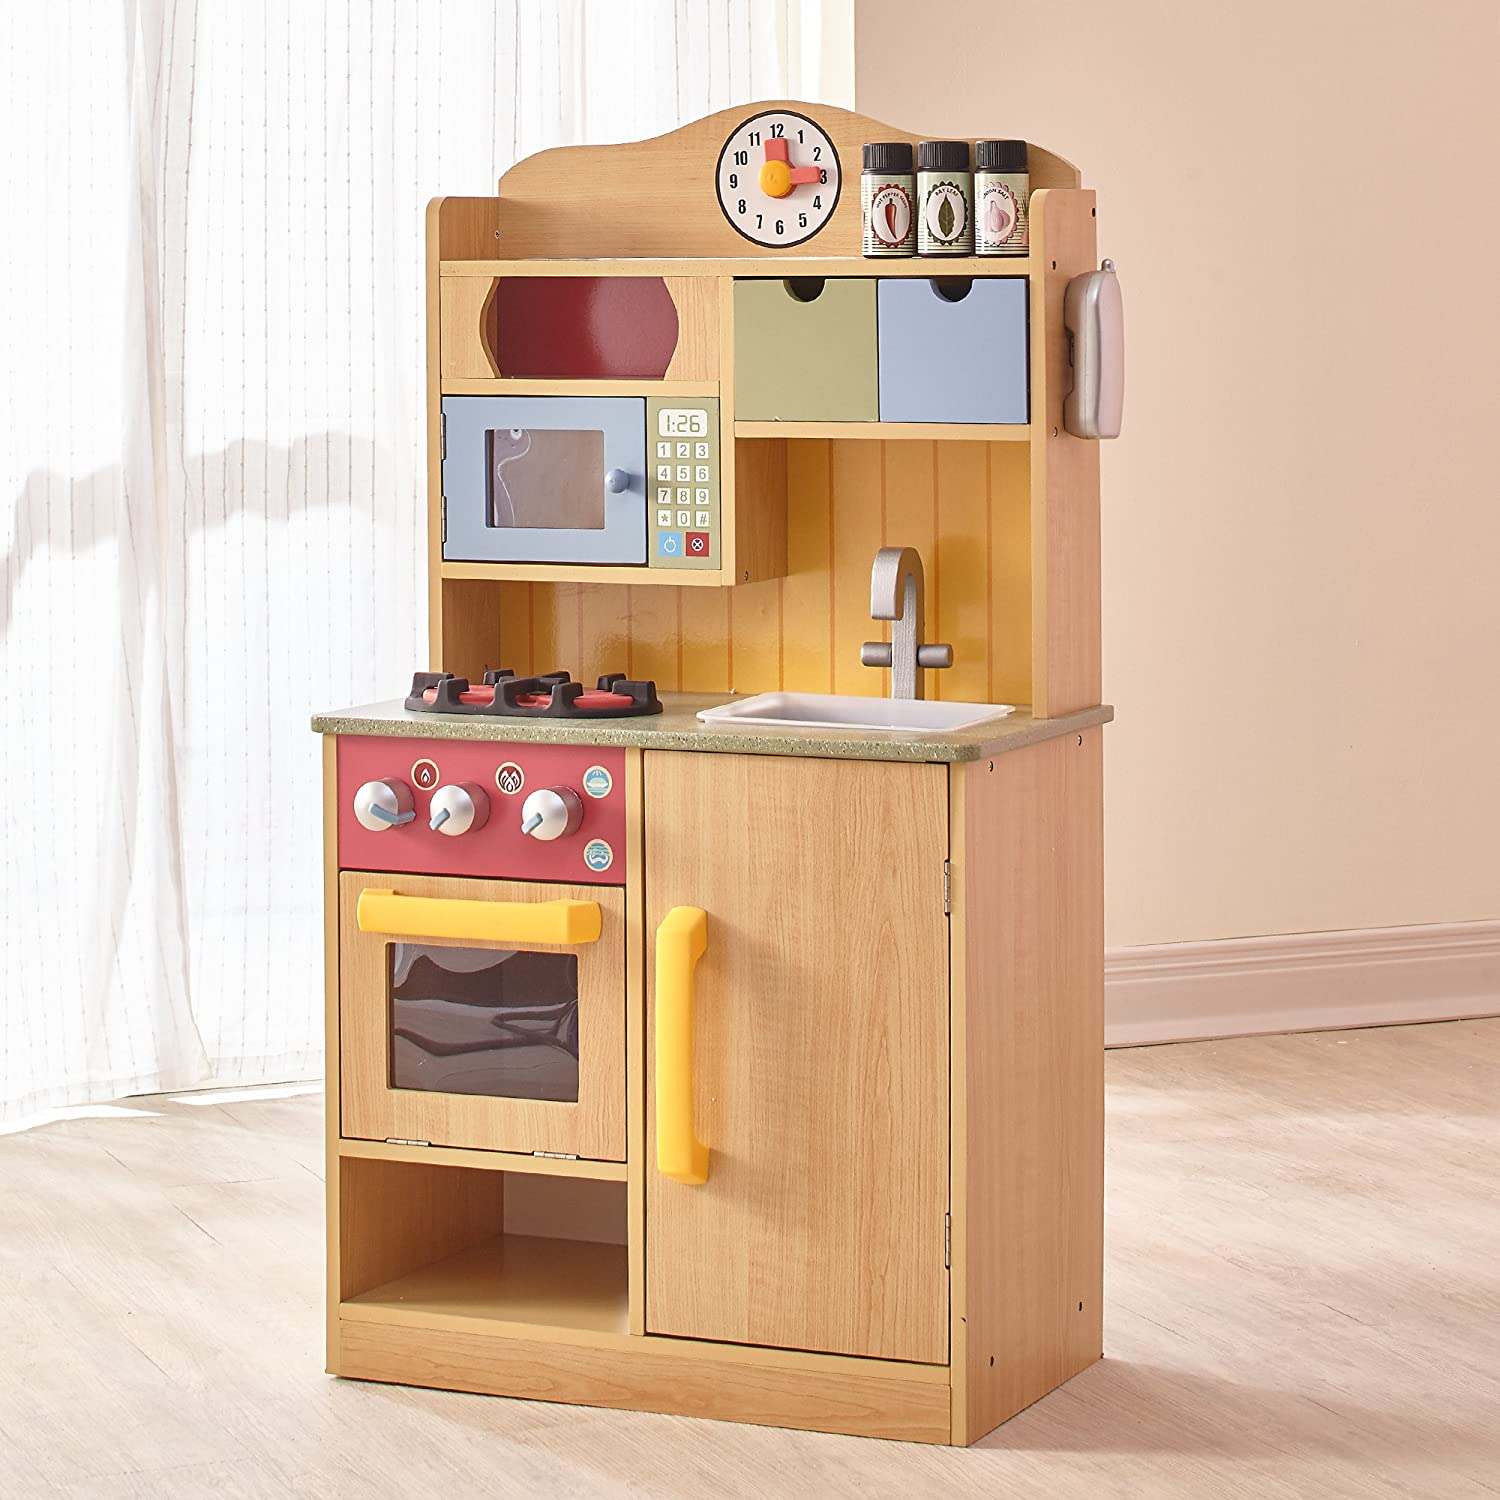 amazoncom teamson kids  little chef wooden toy play kitchen  - amazoncom teamson kids  little chef wooden toy play kitchen withaccessories  burlywood toys  games